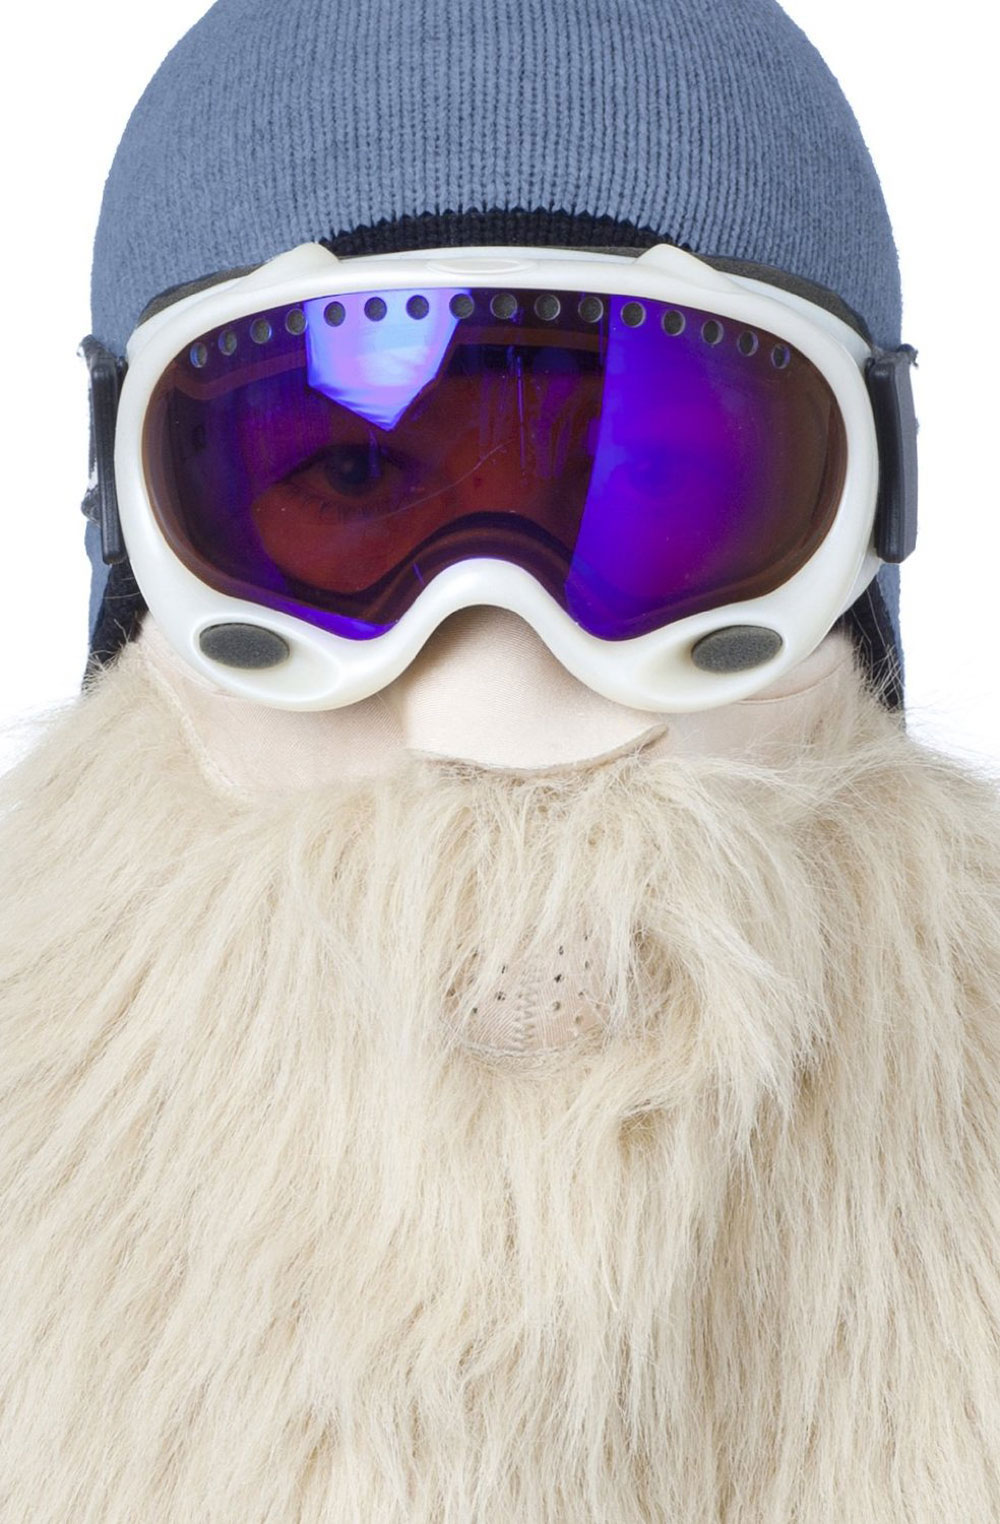 Is Neoprene Waterproof >> Beardski - Bearded Ski Mask